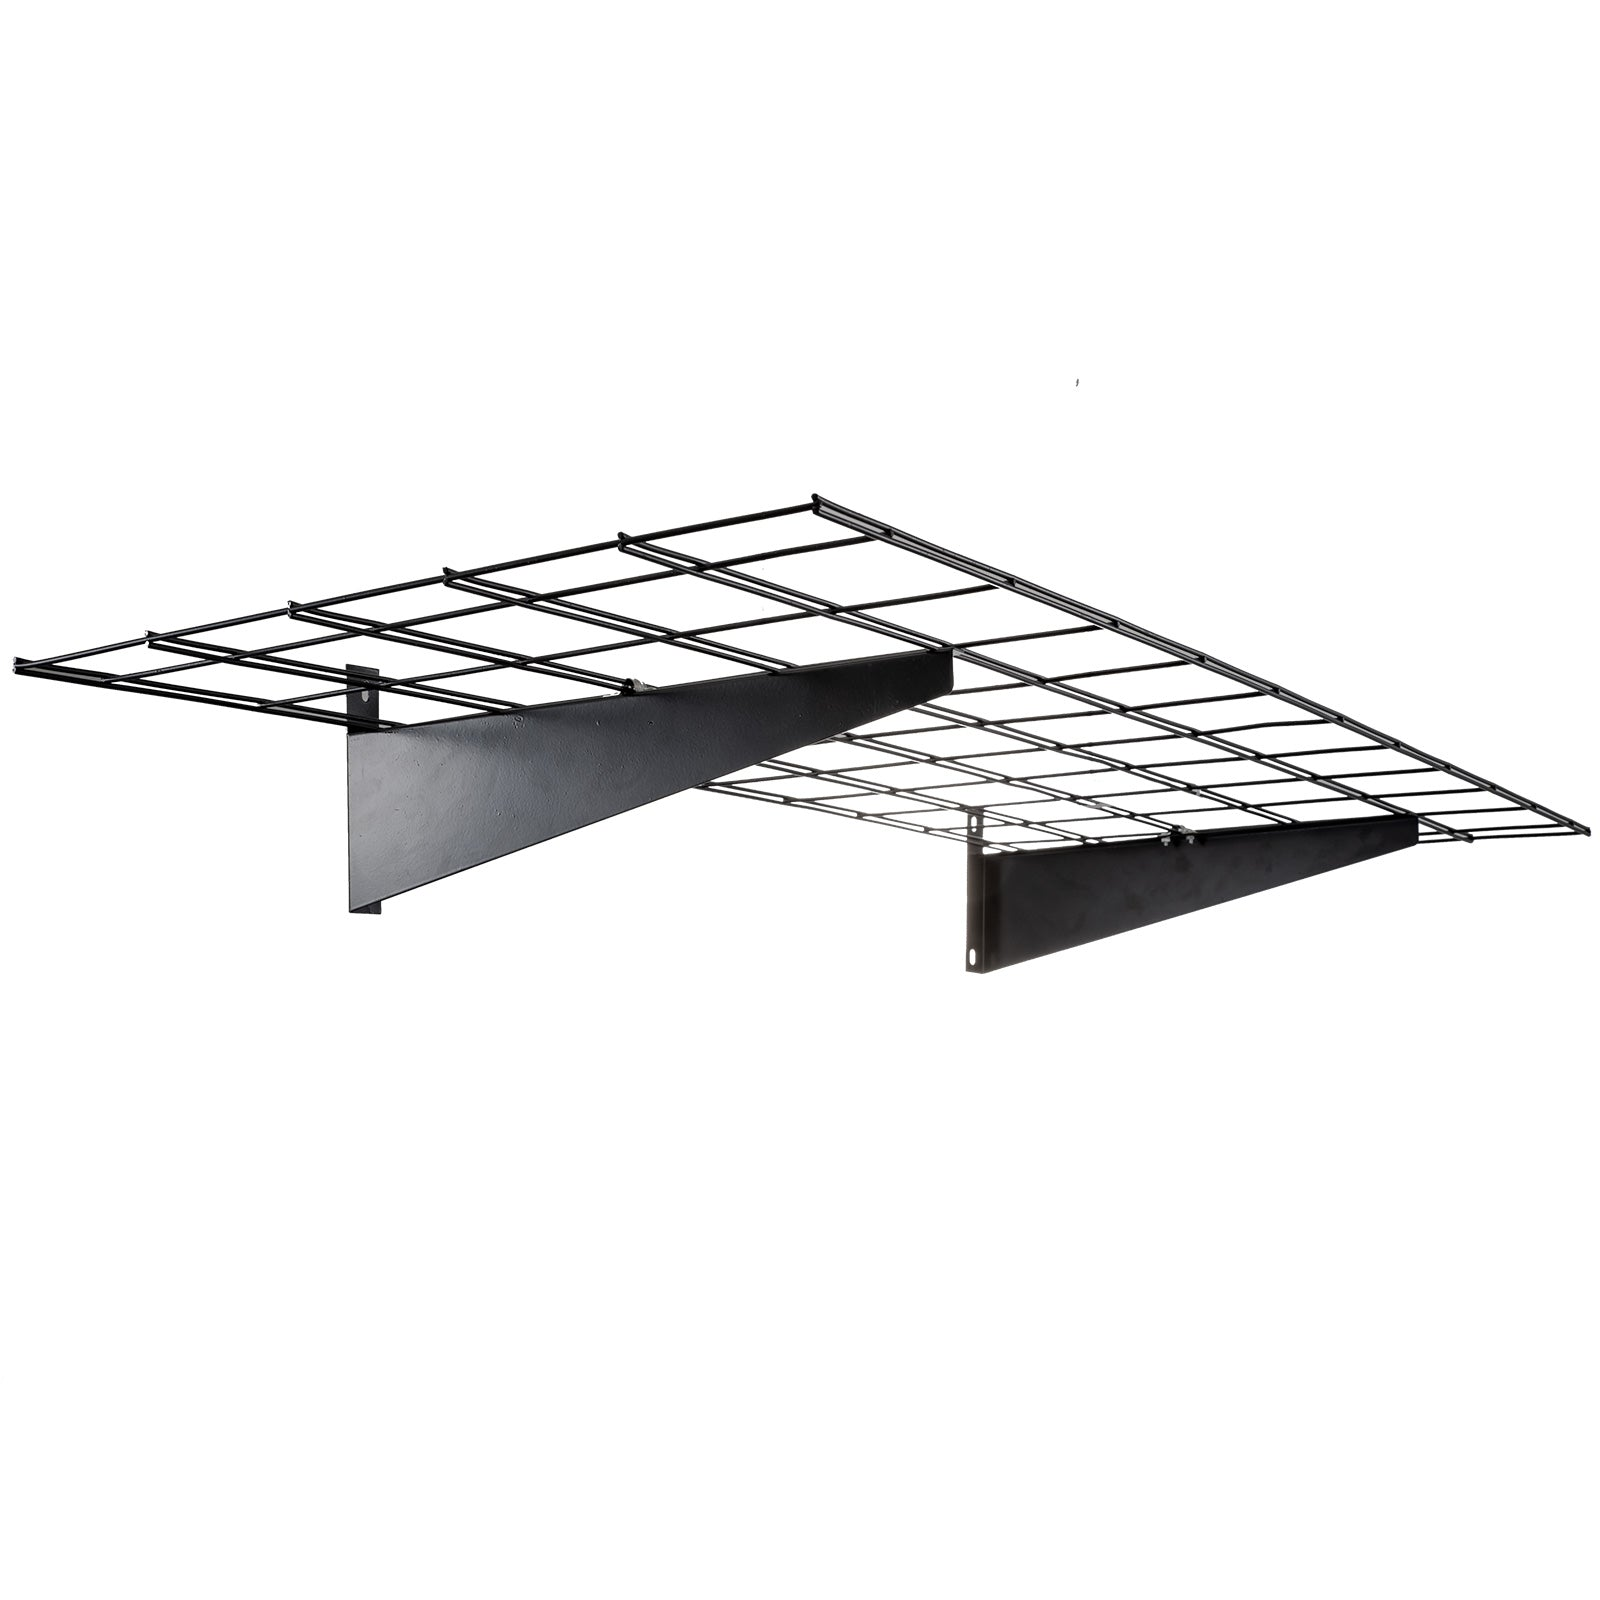 "4 Pcs Black Storage Wall Shelving Steel Construction 43.3 X 15.5"" Garage"